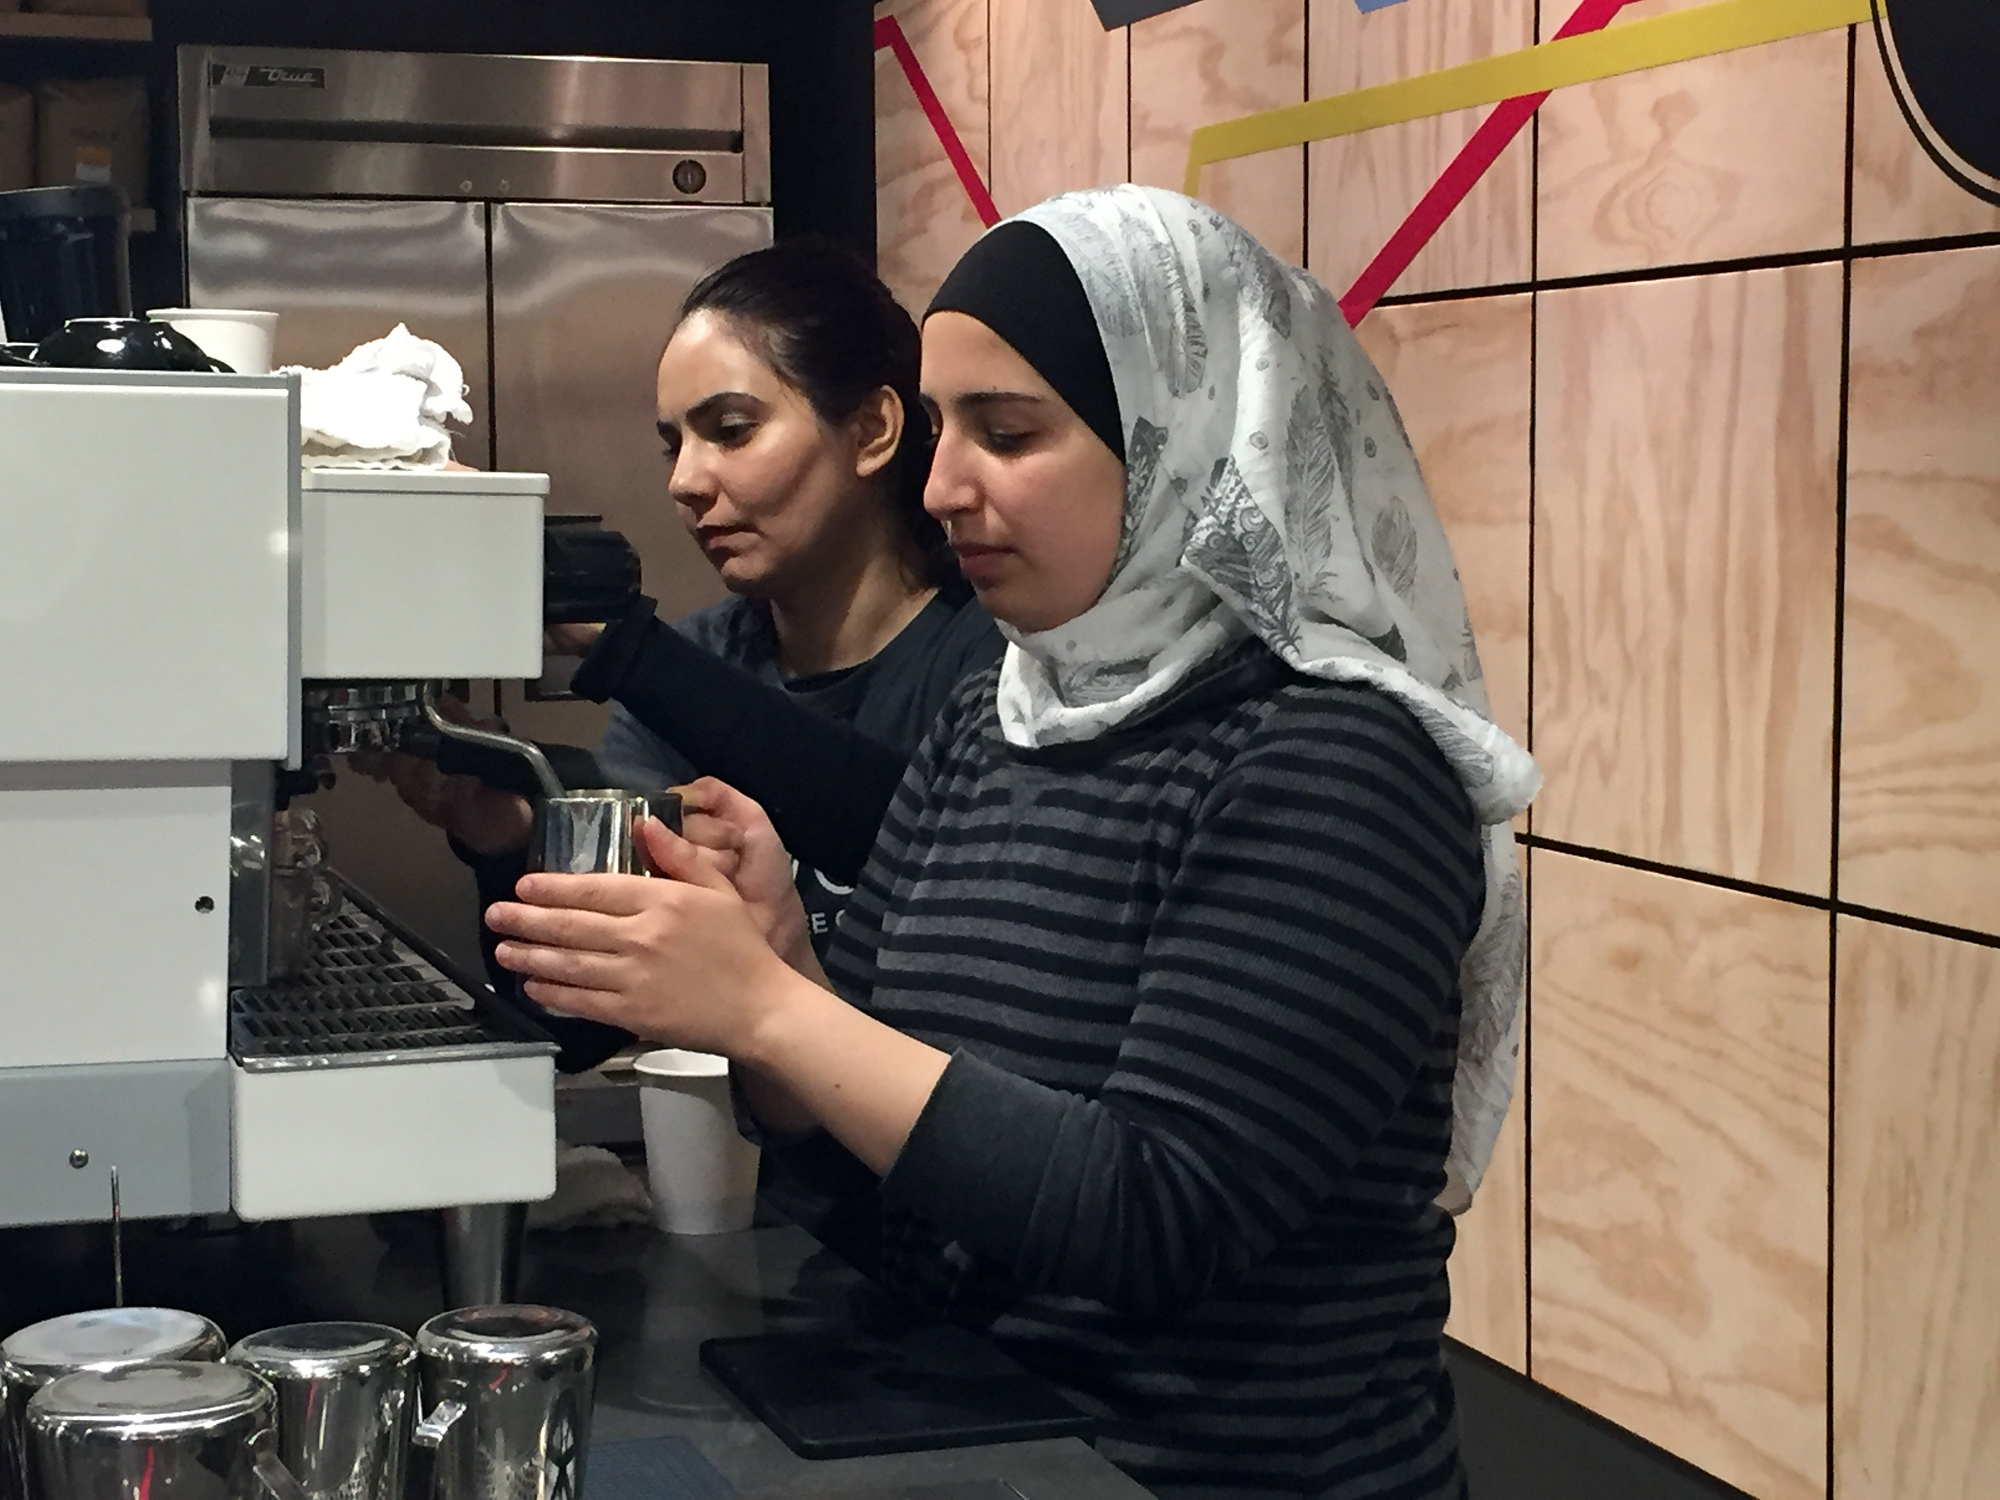 Nazira works with Batool, a Syrian refugee who was interviewed on The California Report. See link below to hear her family's story.